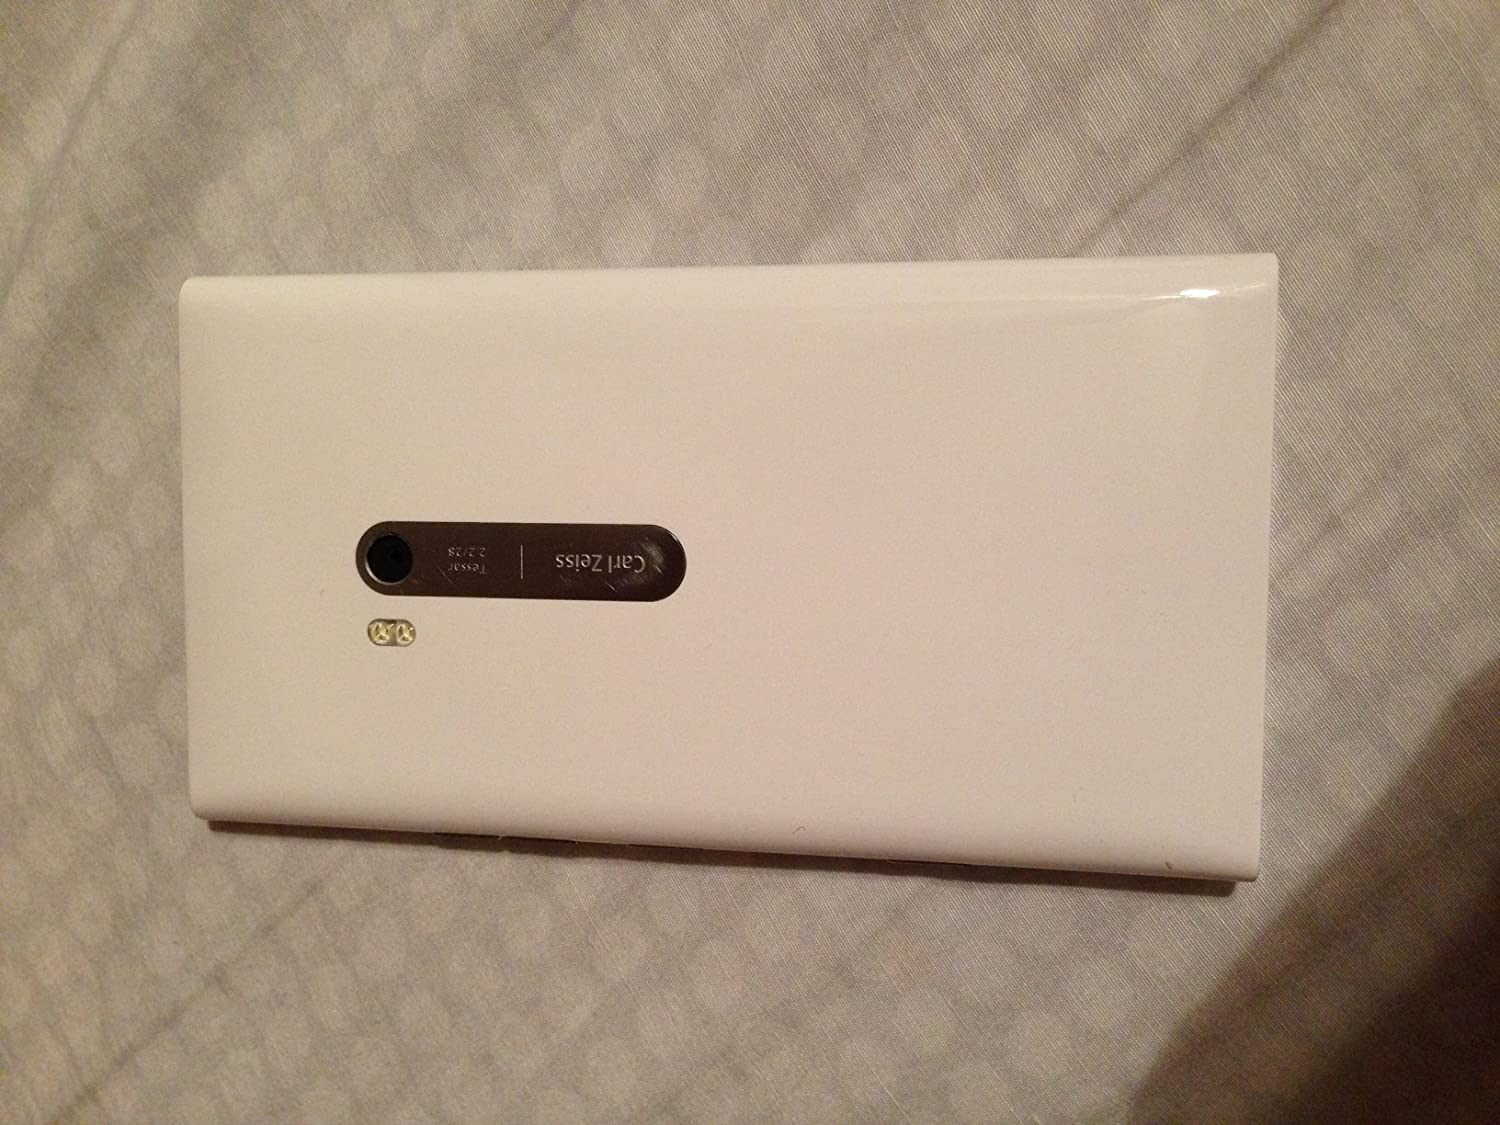 Nokia-Lumia-900-4G-WHITE-FOR-AT-T-ONLY-LOCKED-No-Contract-1-YEAR-US-WARRANTY